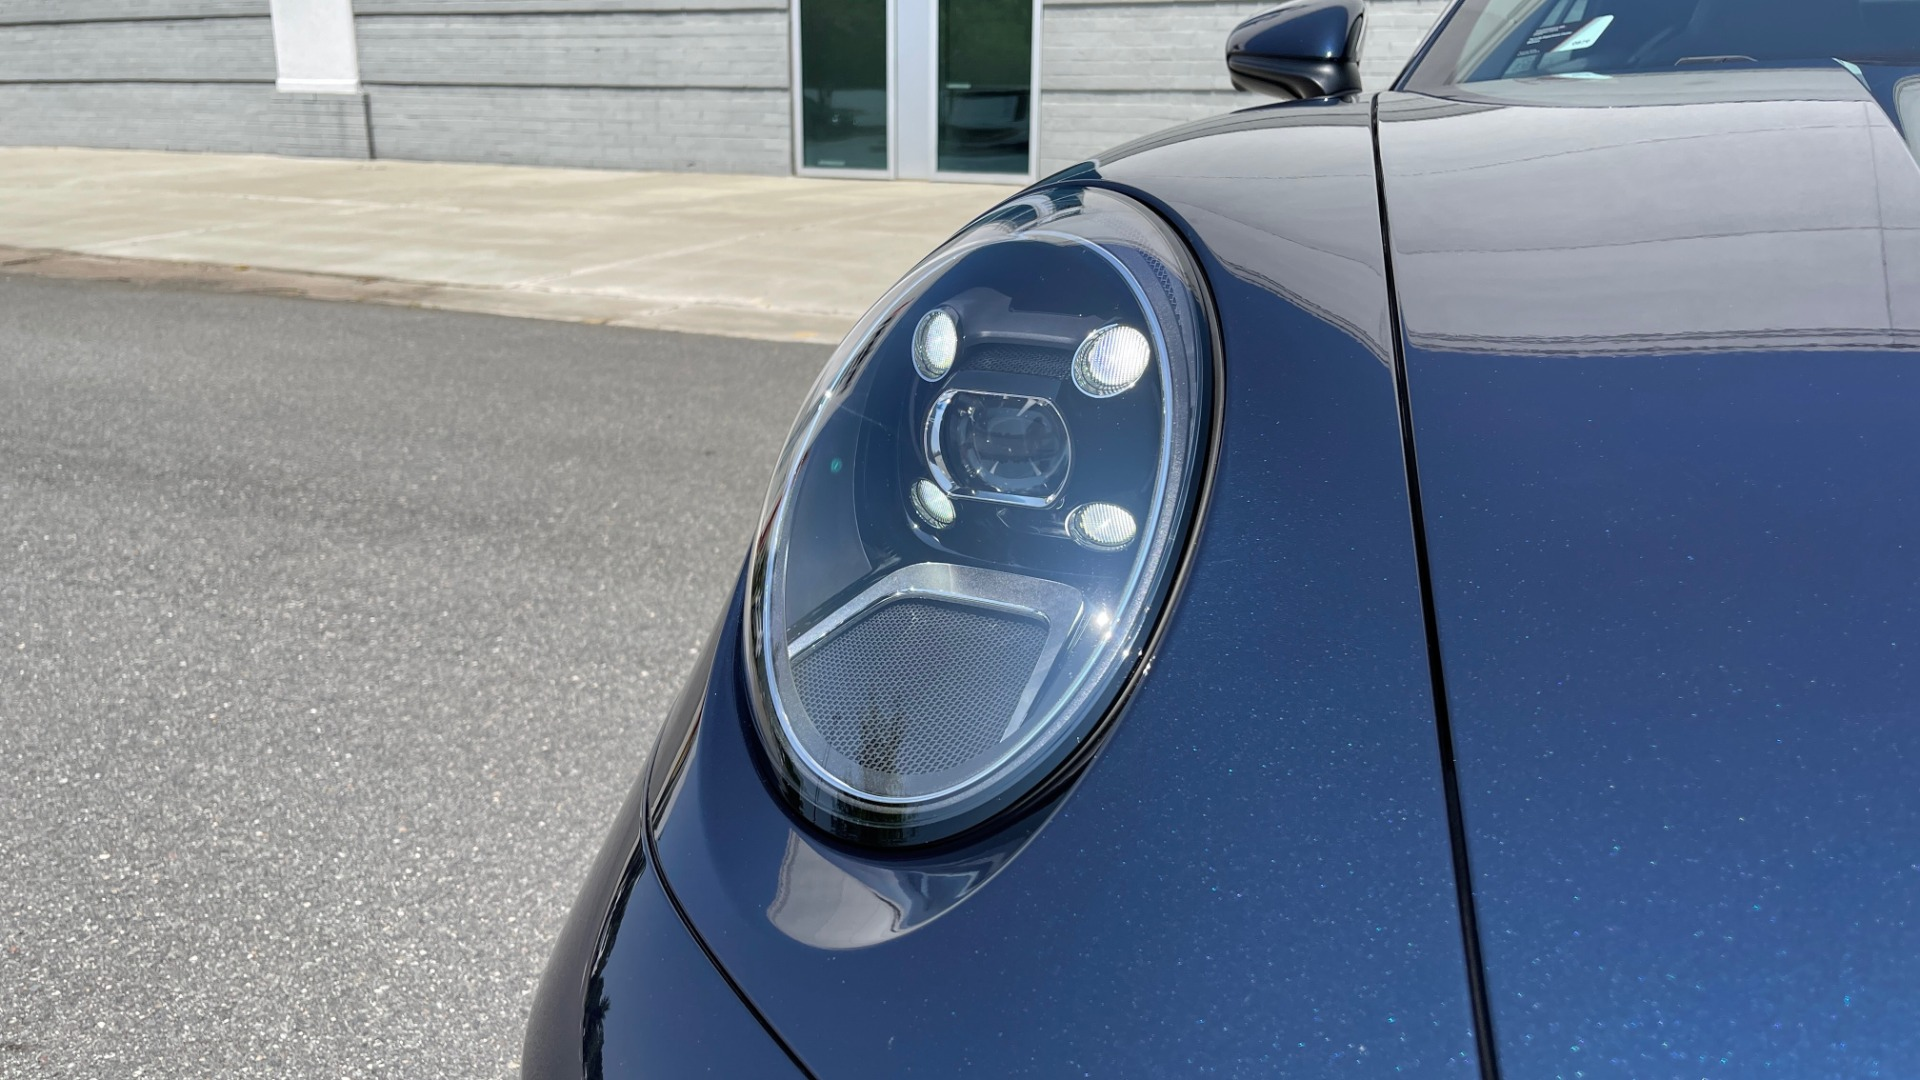 Used 2020 Porsche 911 CARRERA S CABRIOLET PREMIUM SPORT / LCA / ACC / BOSE / REARVIEW for sale $159,995 at Formula Imports in Charlotte NC 28227 21